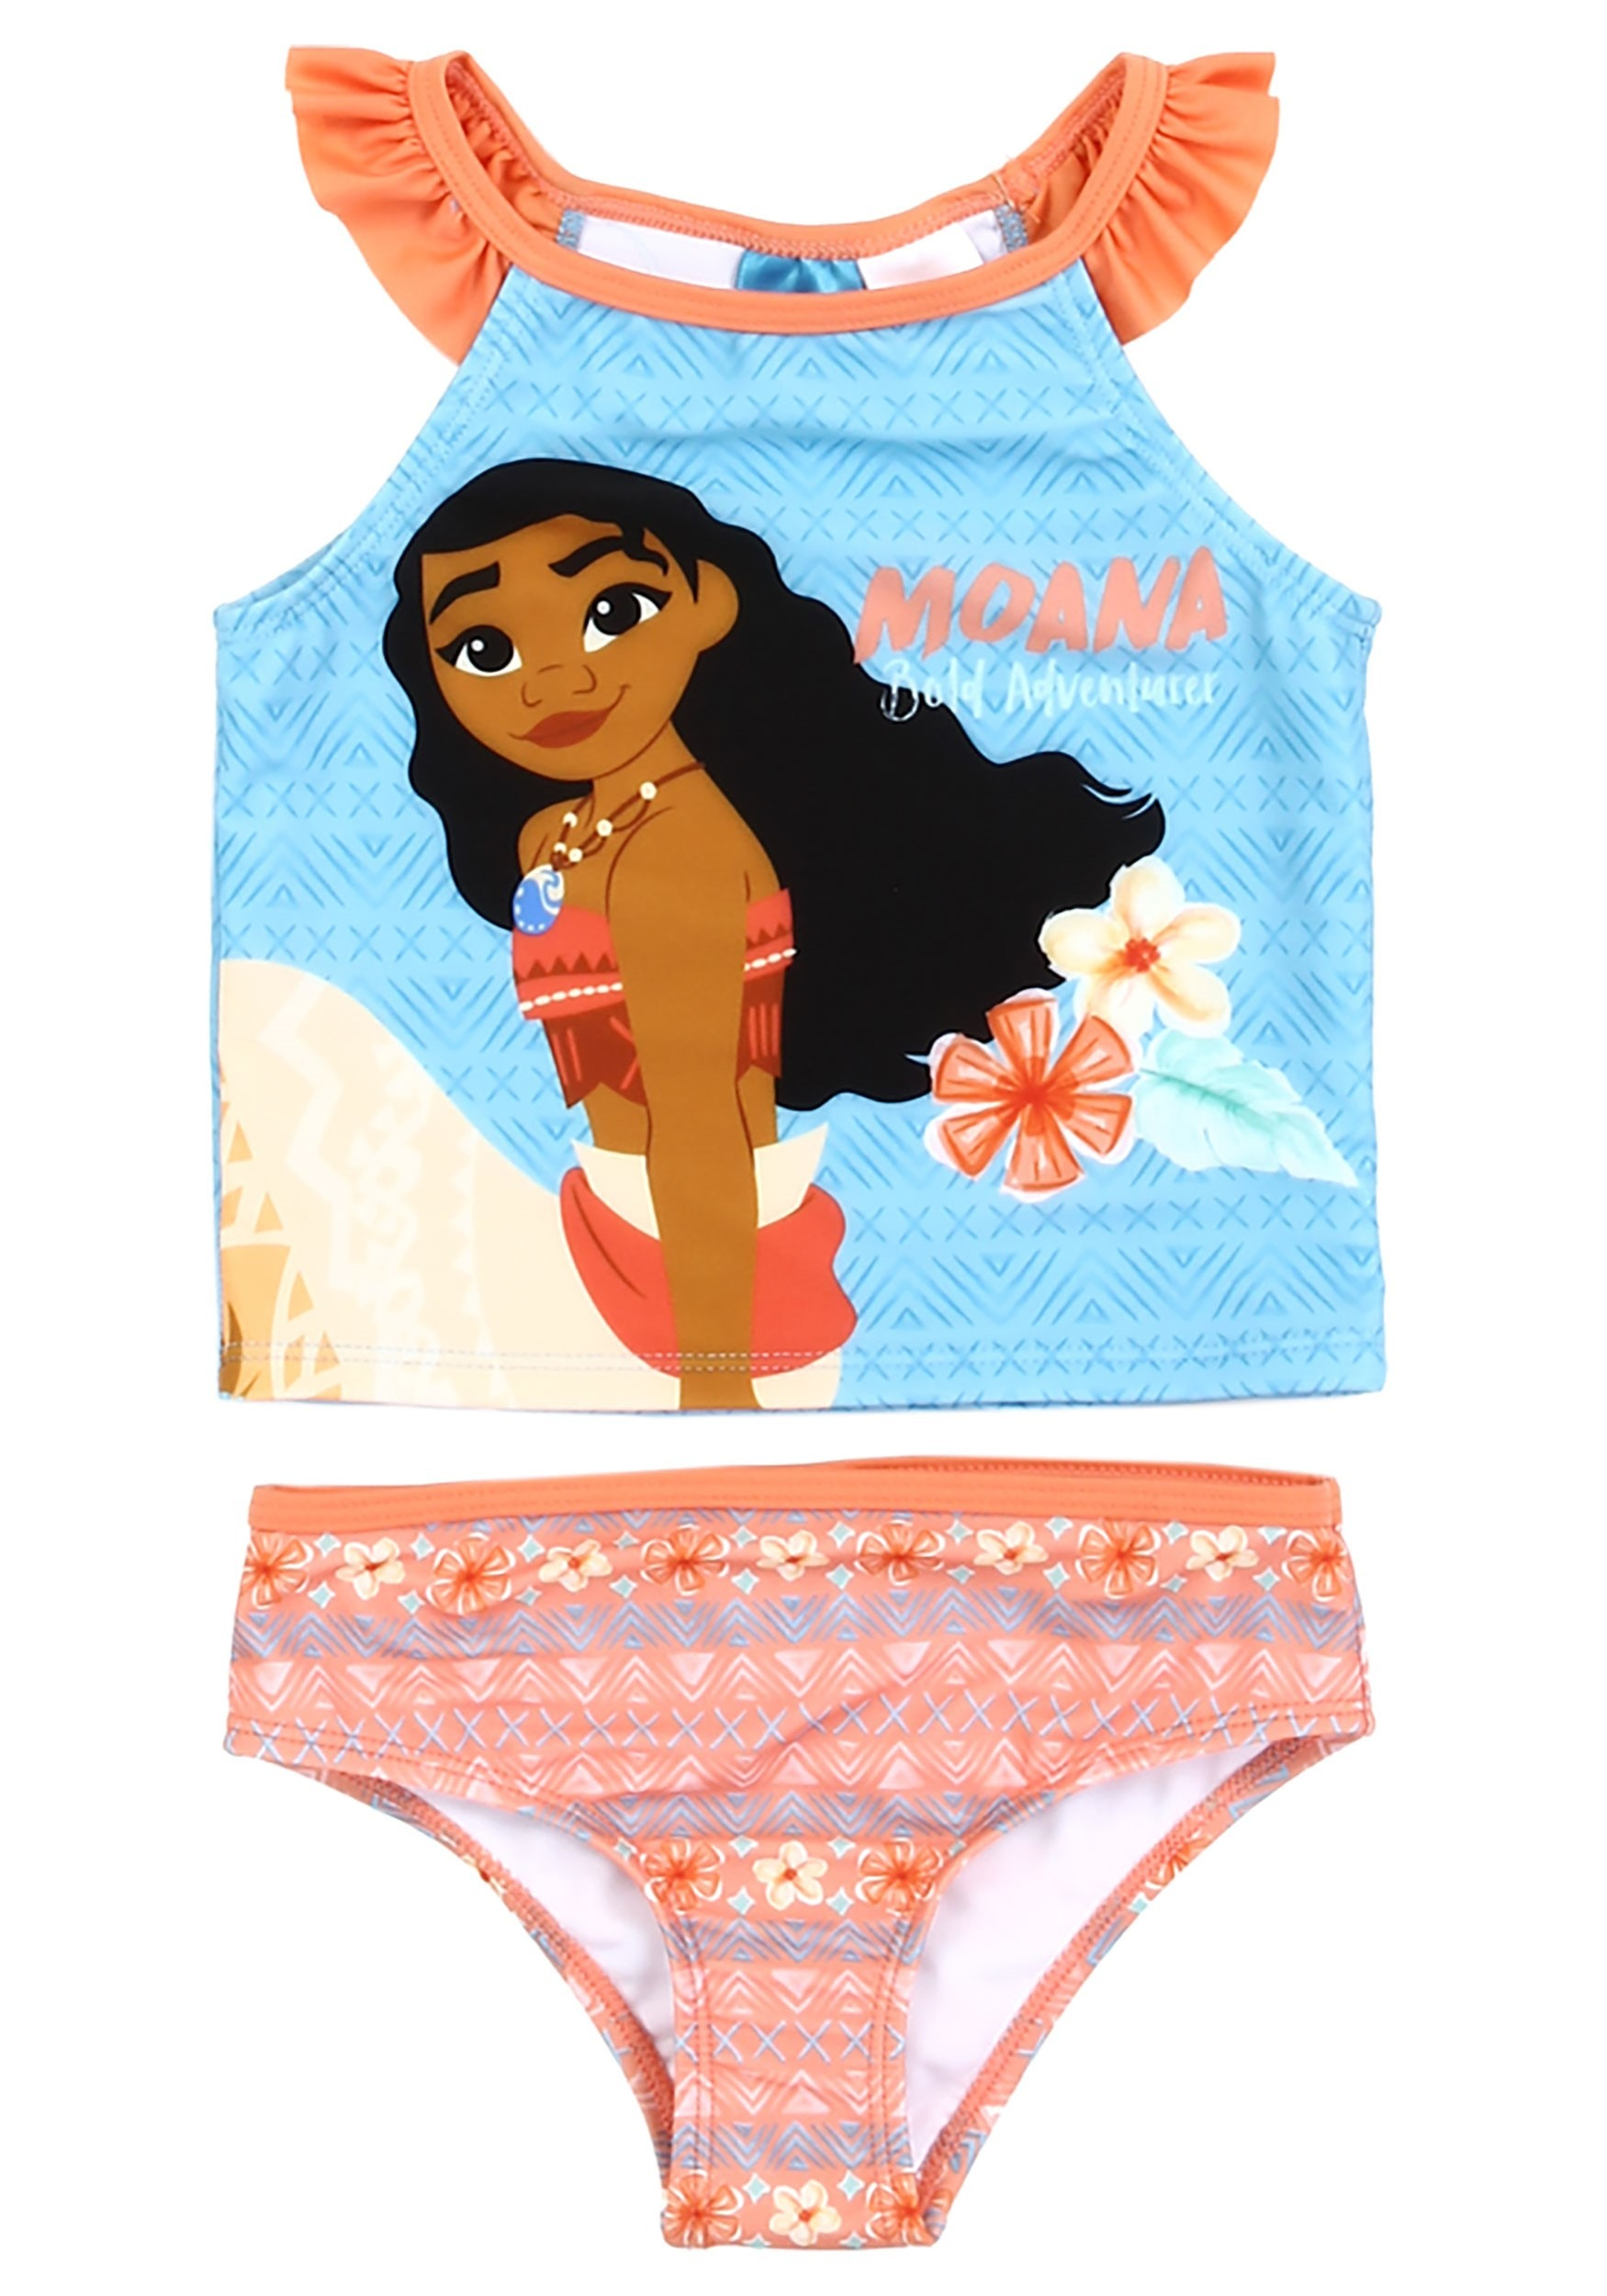 Disney Moana Two-Piece Toddler Swimsuit for Girls